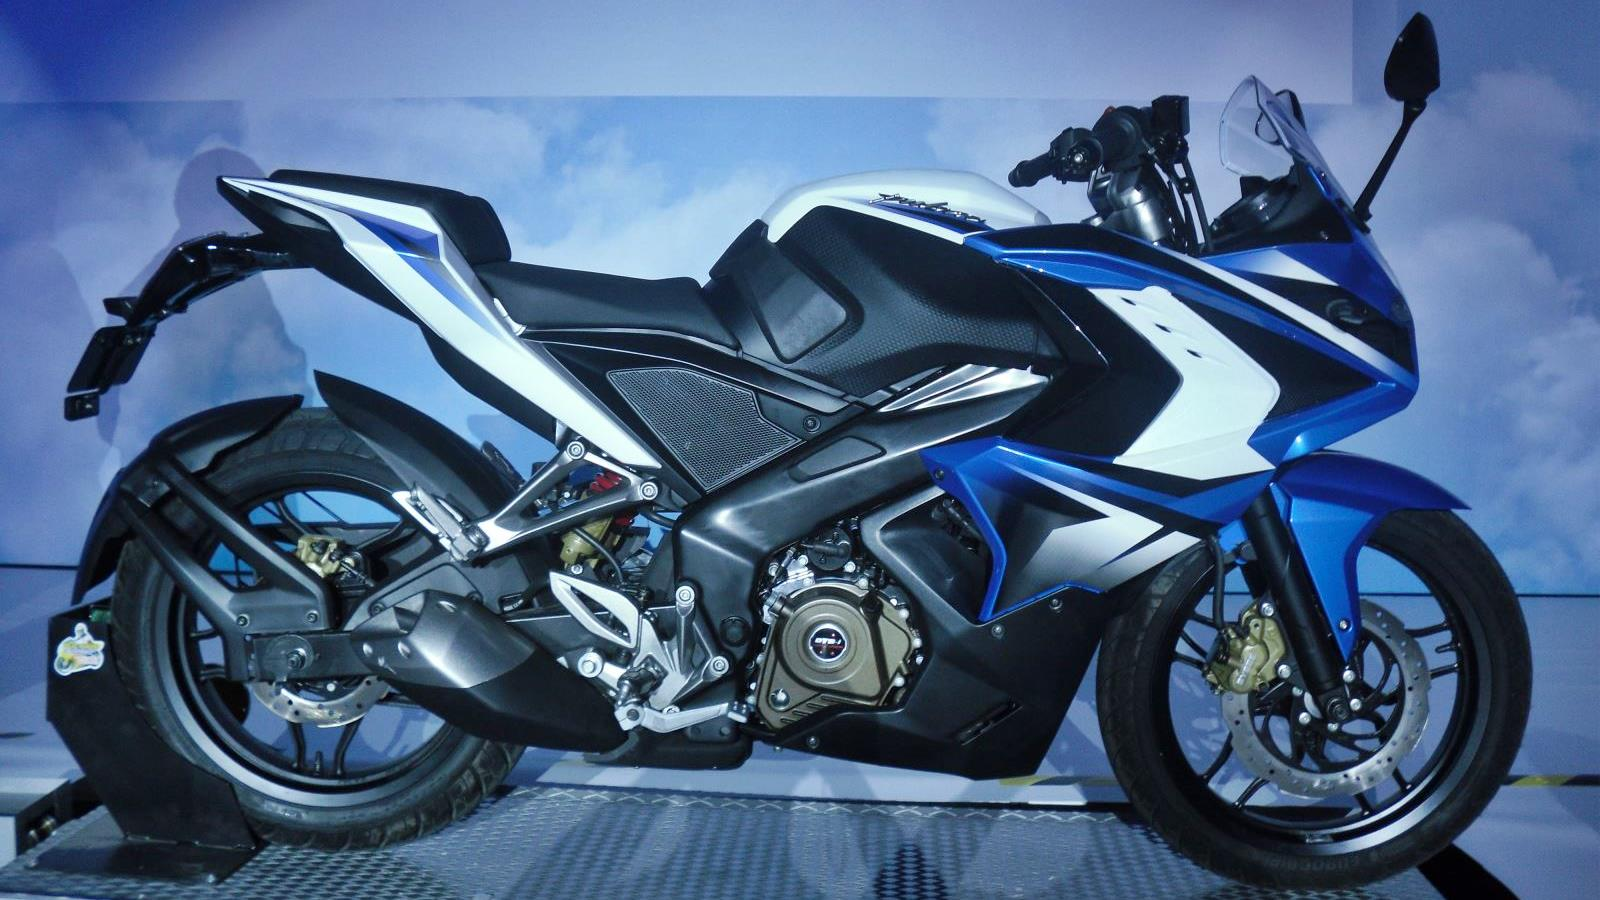 Pulsar 200 ss India launch soon